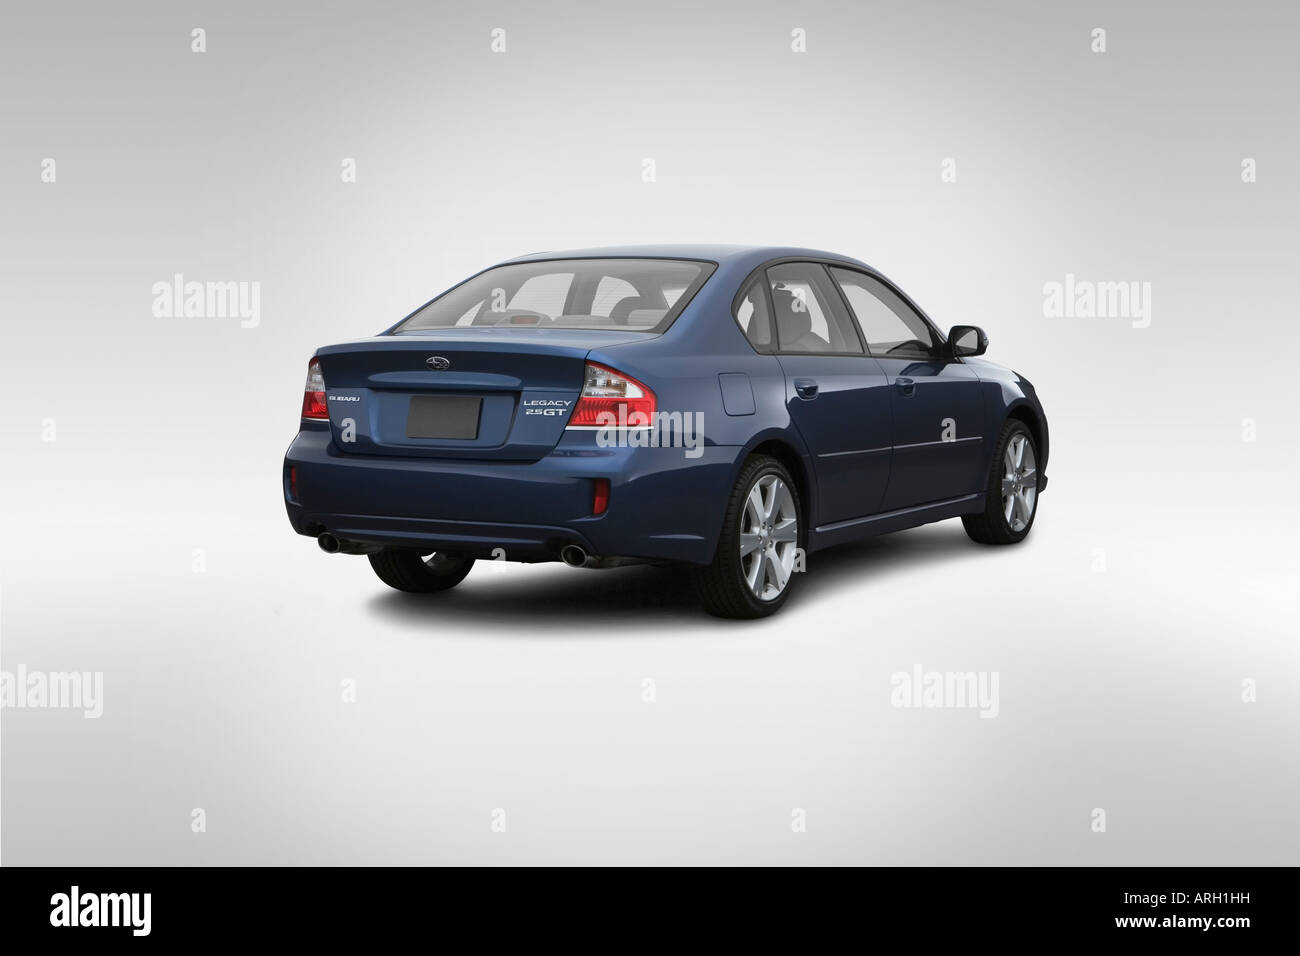 2008 Subaru Legacy 2 5 Gt Limited In Blue Rear Angle View Stock